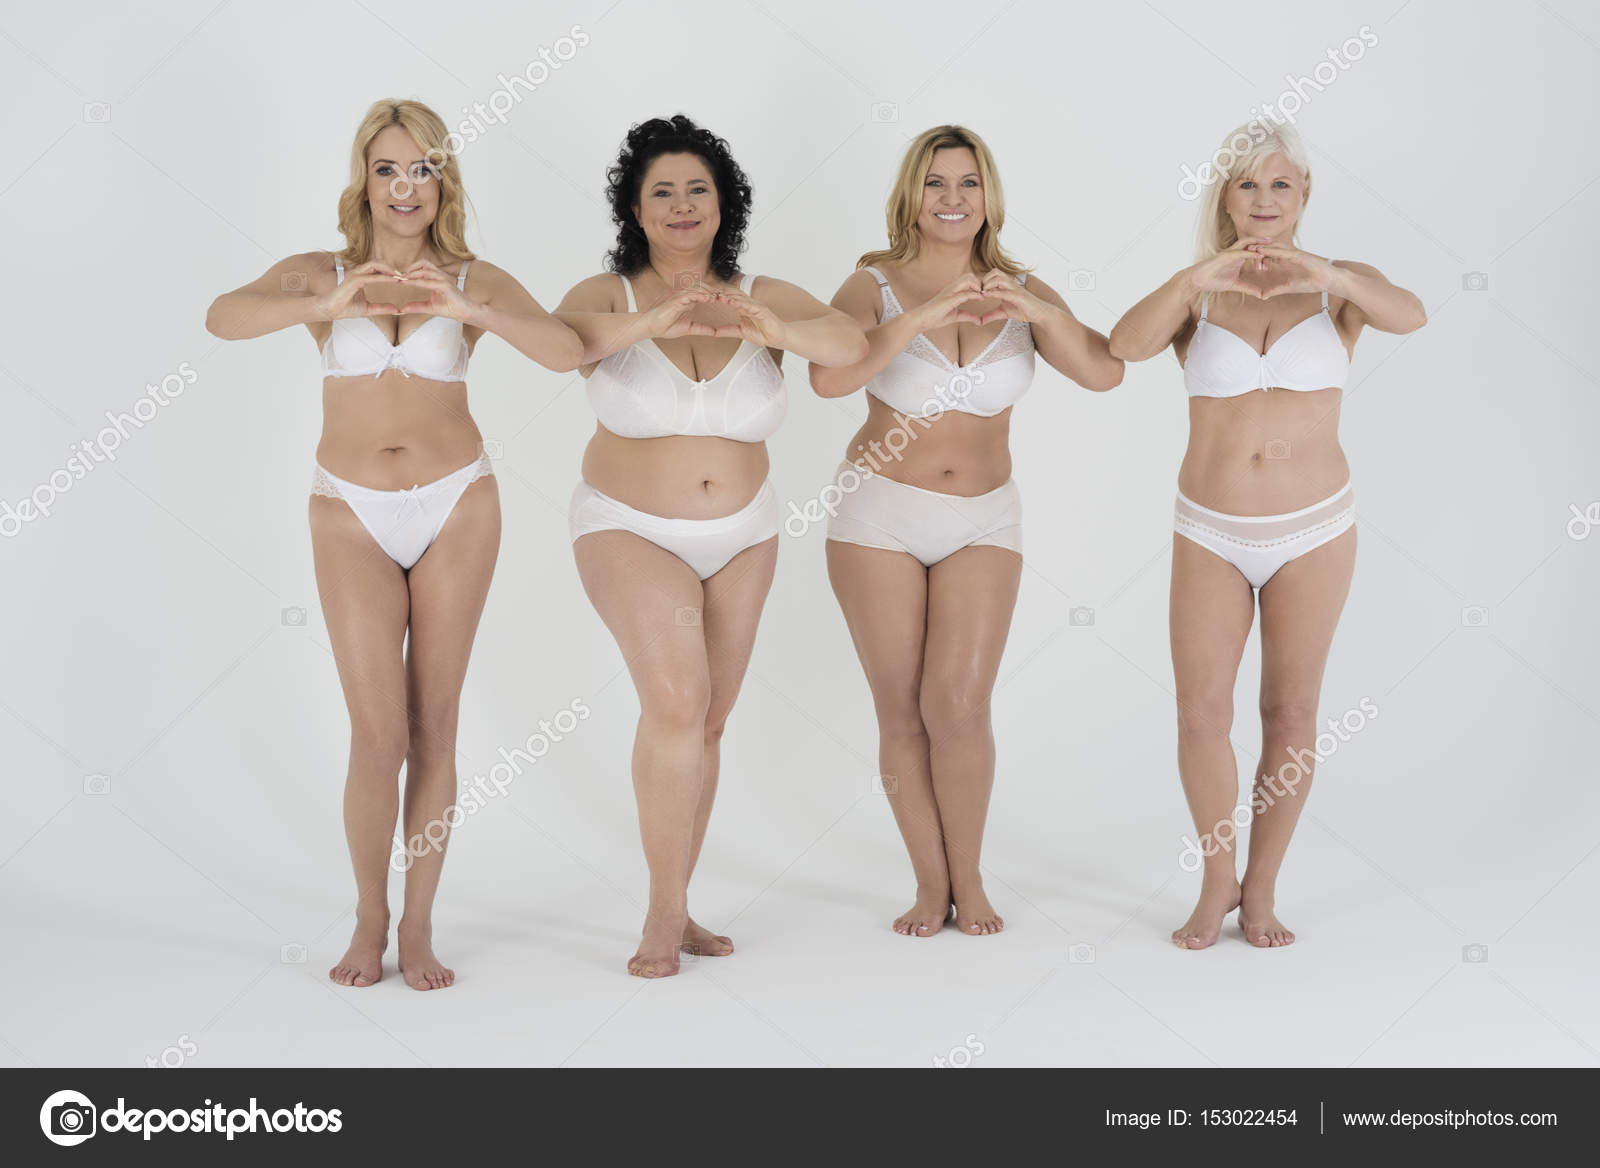 Agree with Mature women full body accept. The